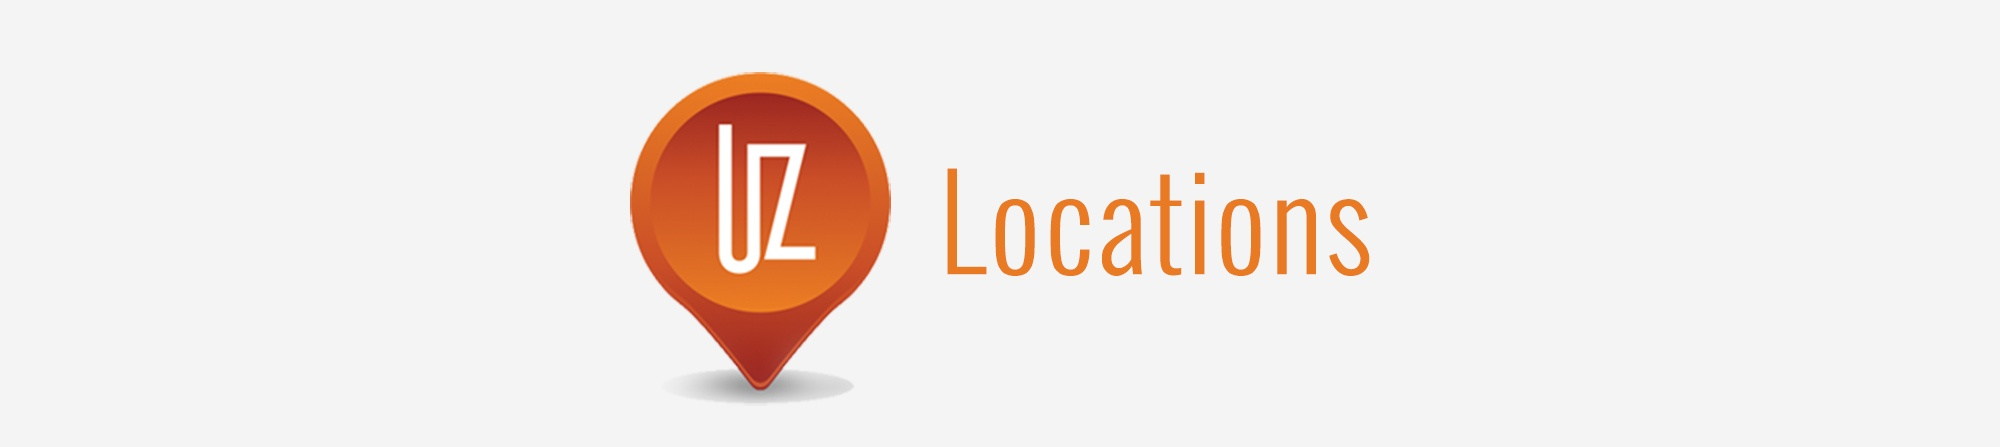 uzoox-locations-header